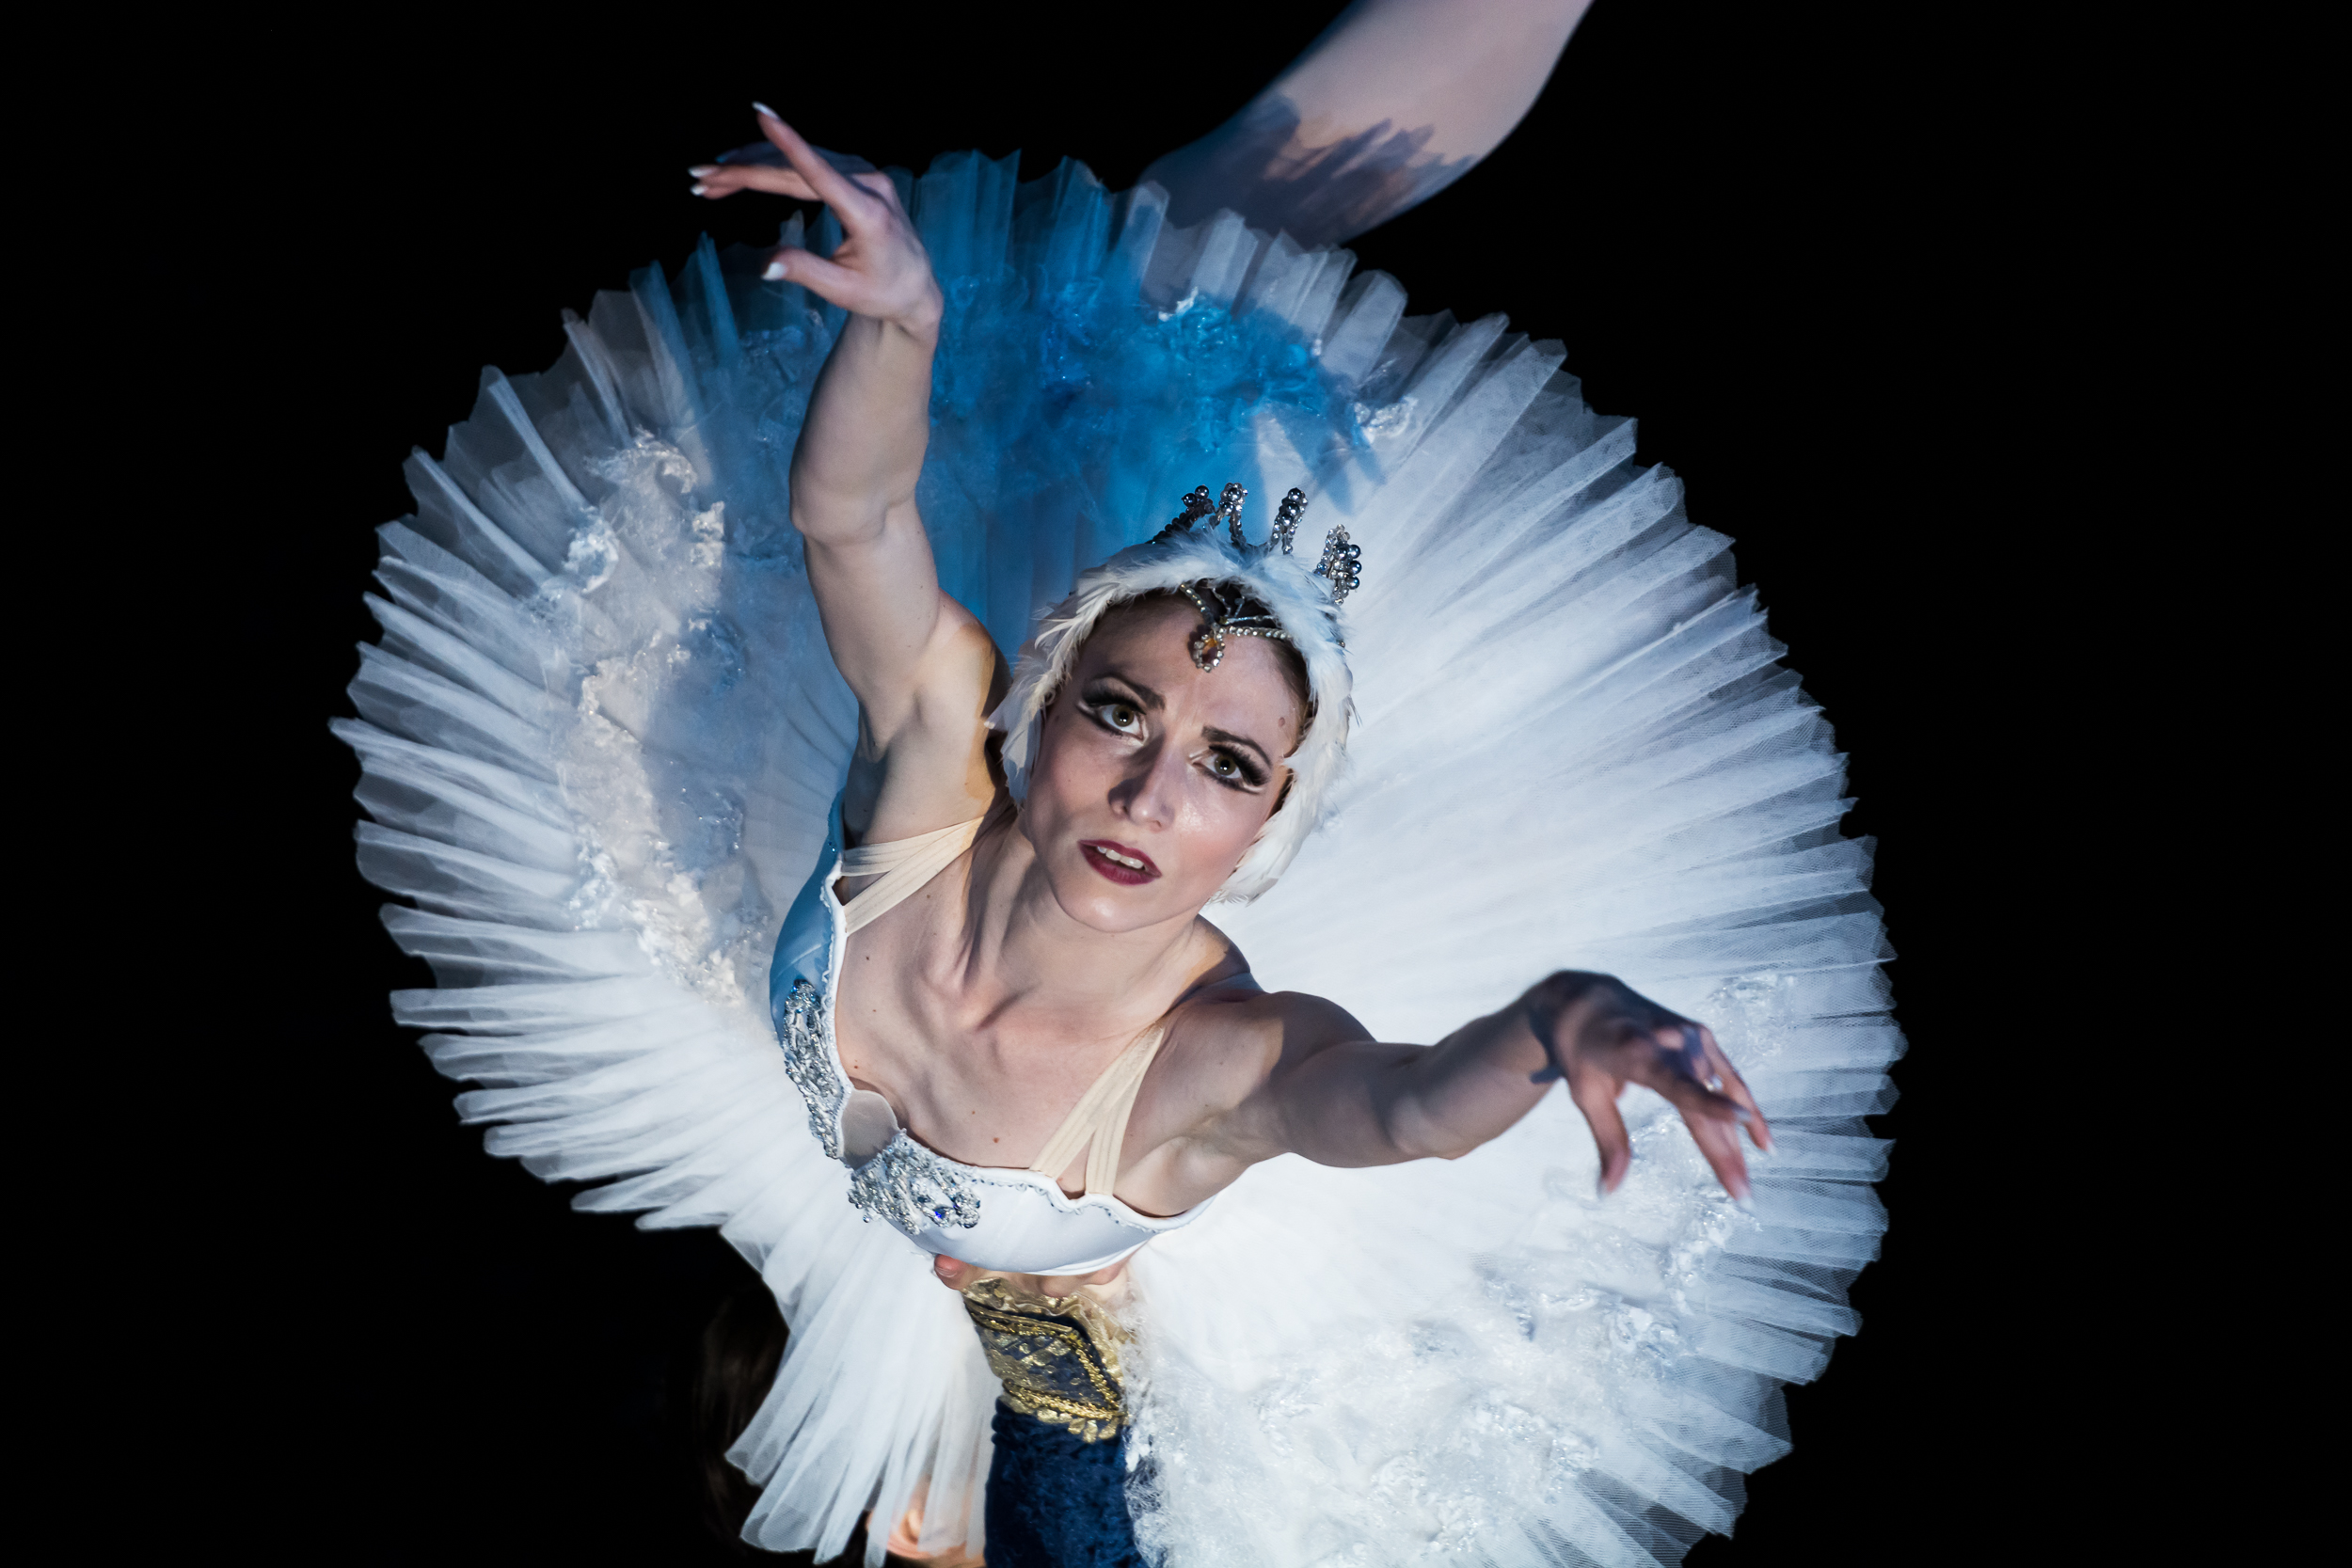 Swan Lake-6617-Edit-Klaudia Svatba.jpg